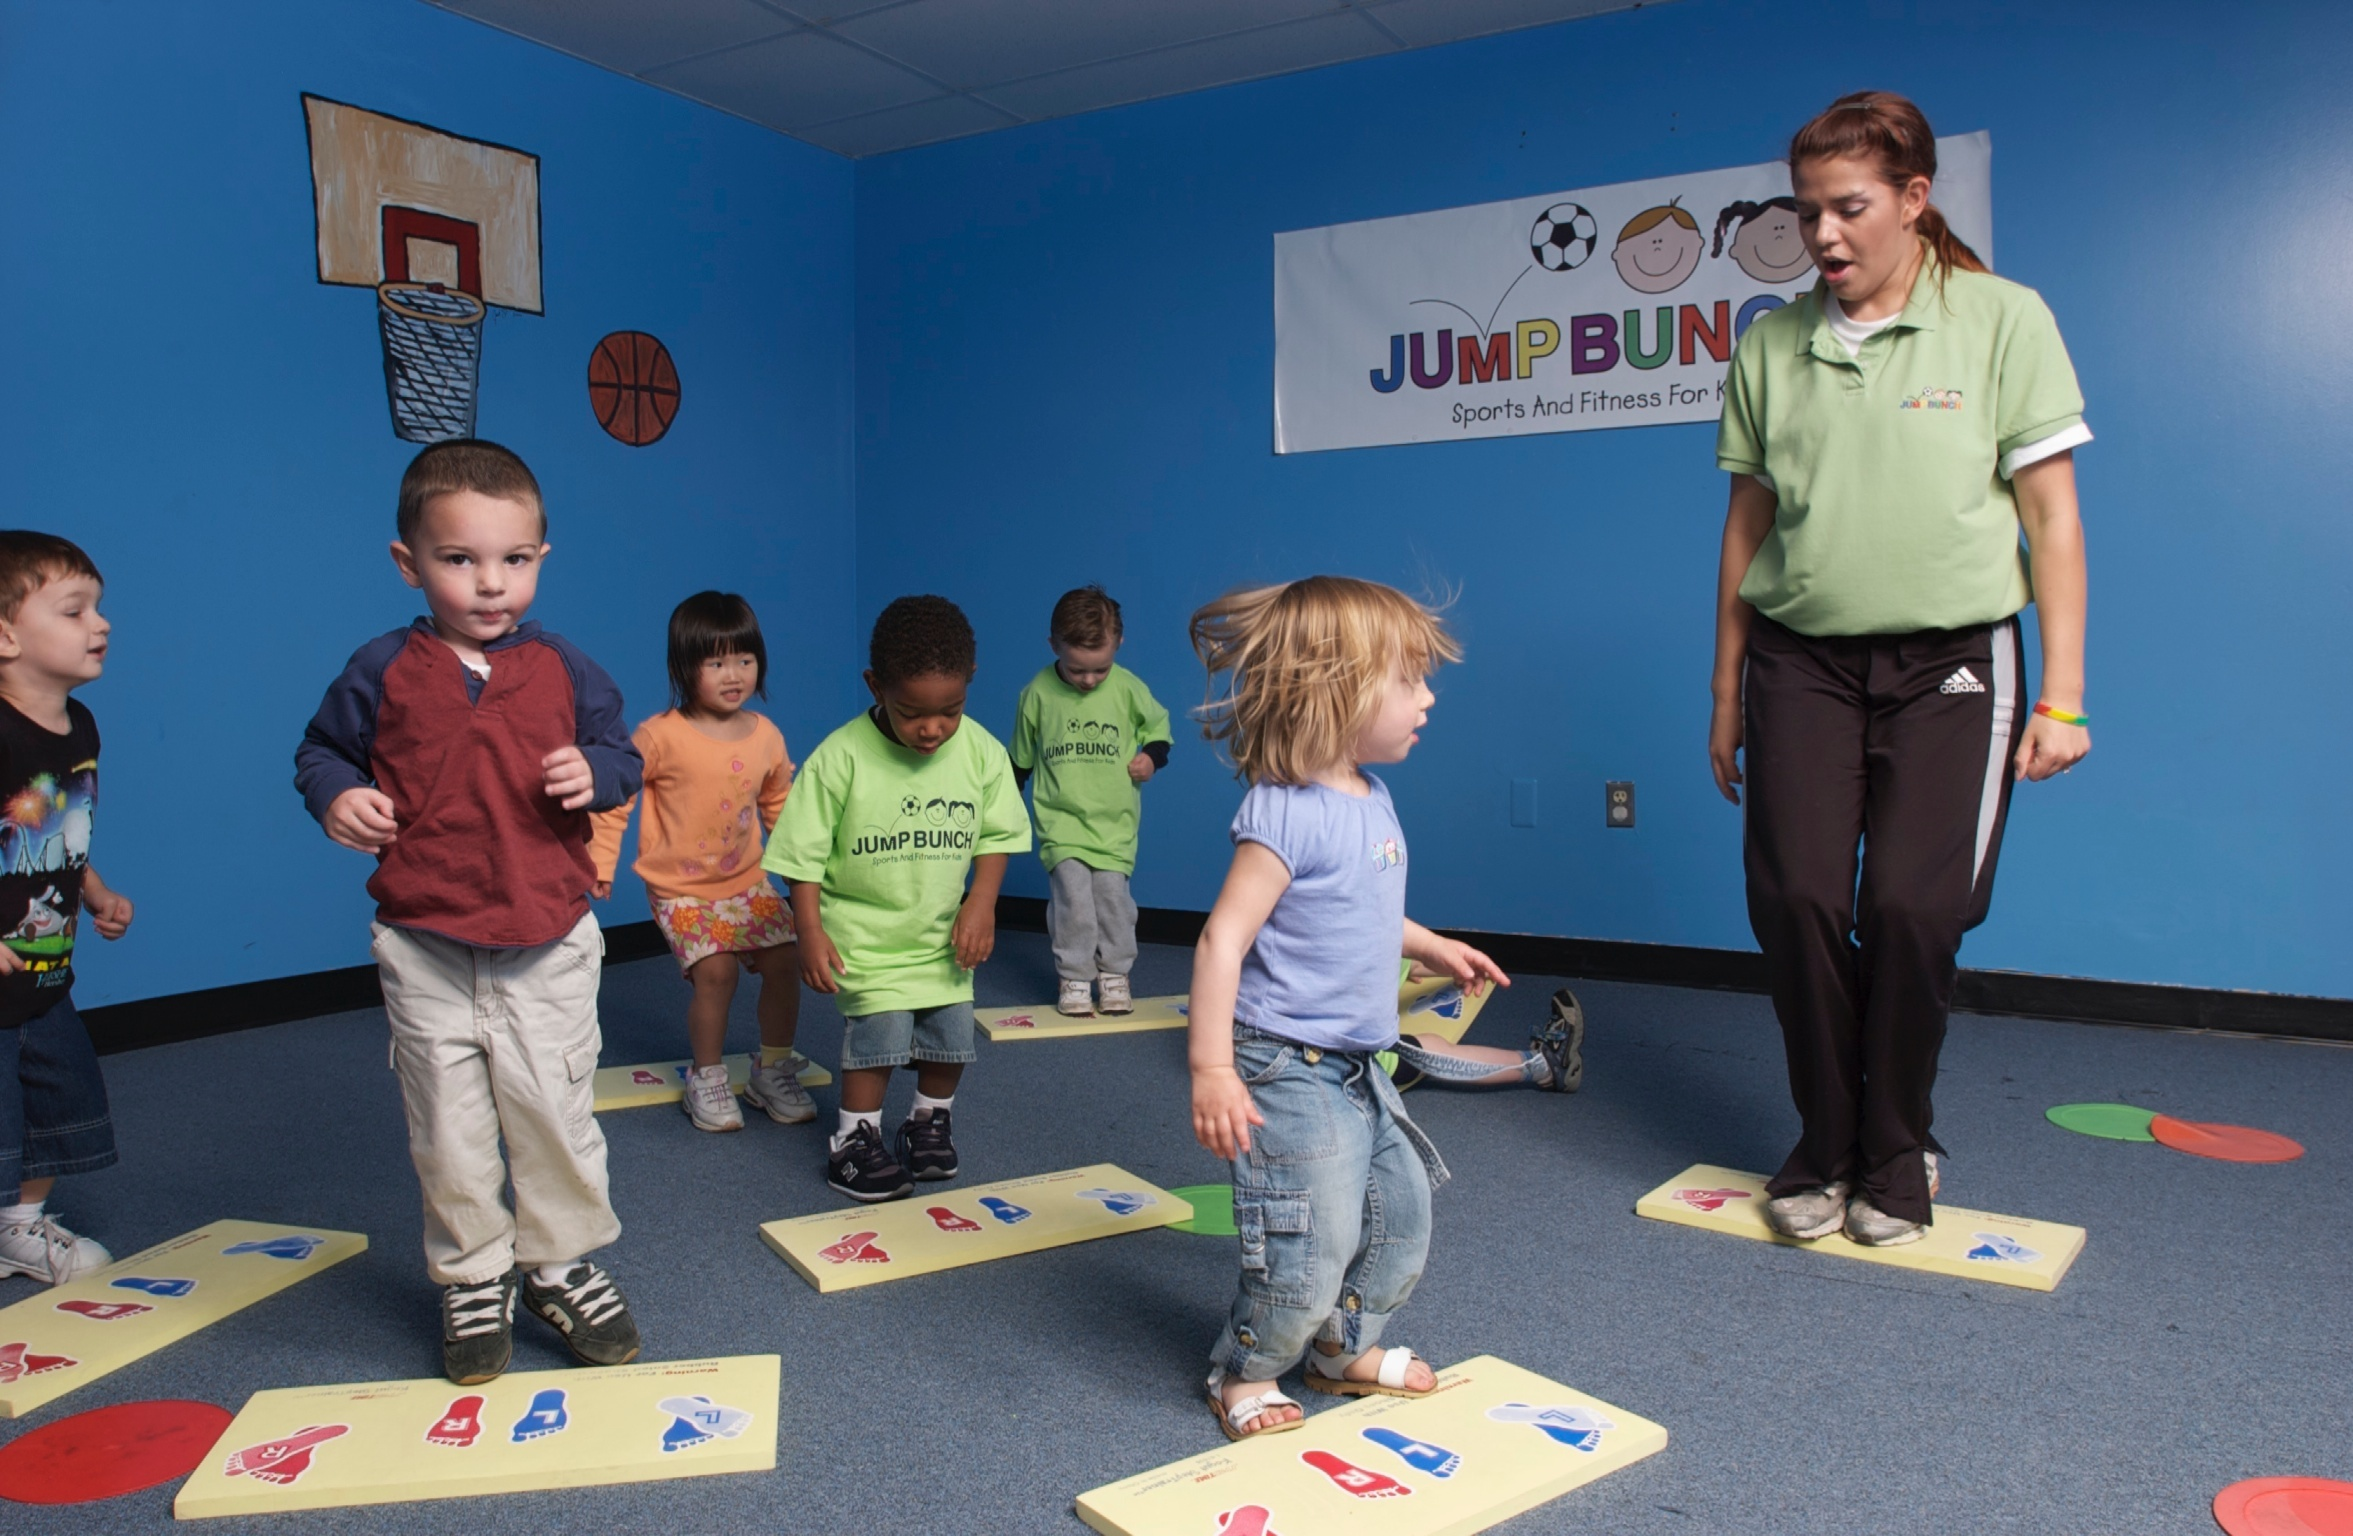 JumpBunch Central Houston | A Friendly Introduction to Sports and Fitness!